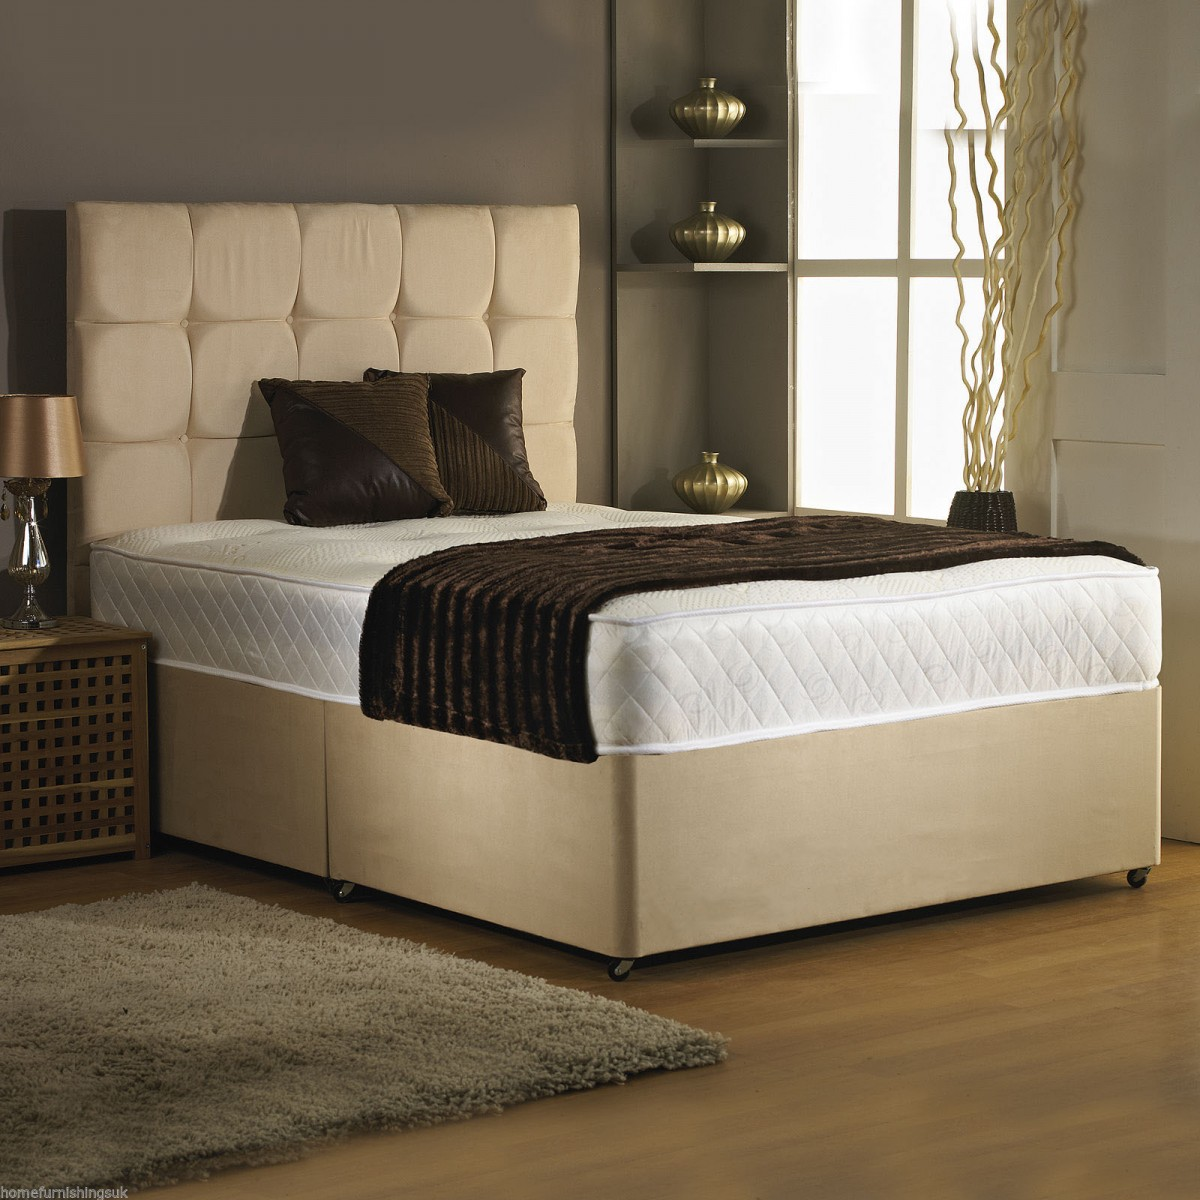 4ft small double divan bed base only in stone colour suede for 4ft divan bed